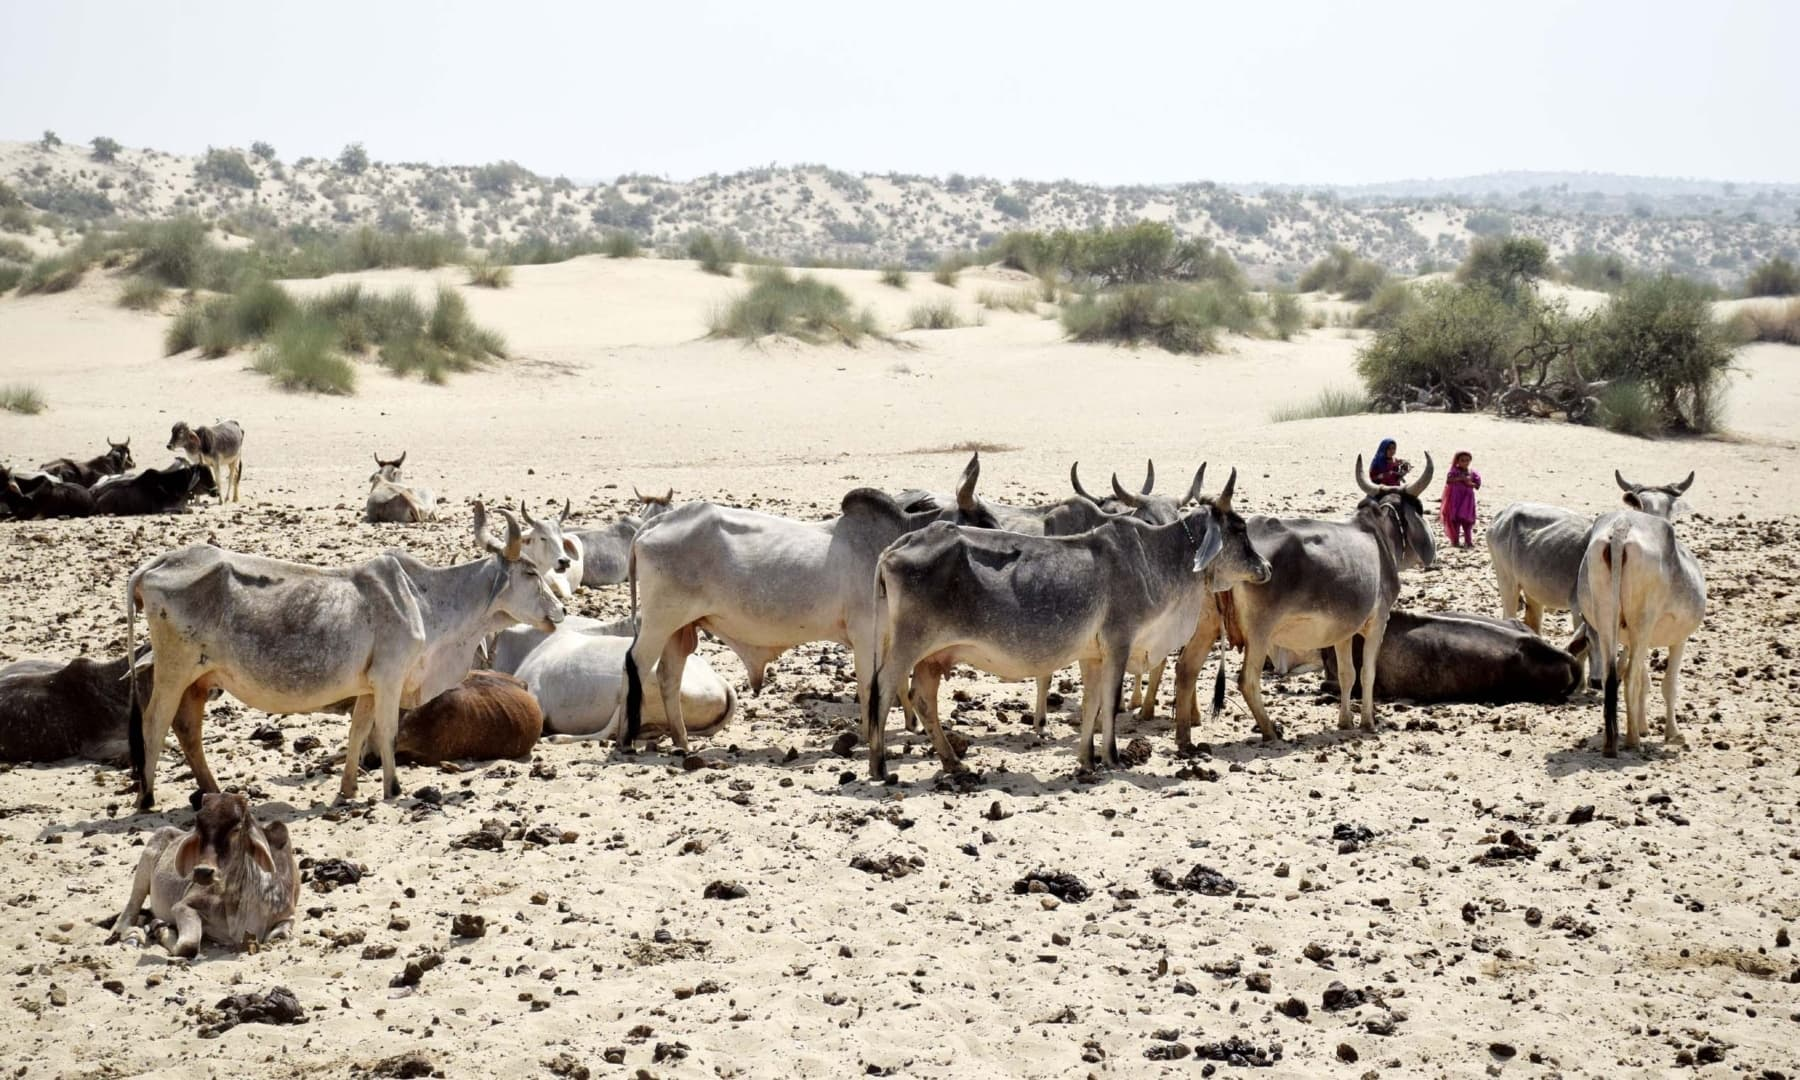 A herd of cattle in Achhro Thar, Khipro, Sindh. — Photo by Umair Ali